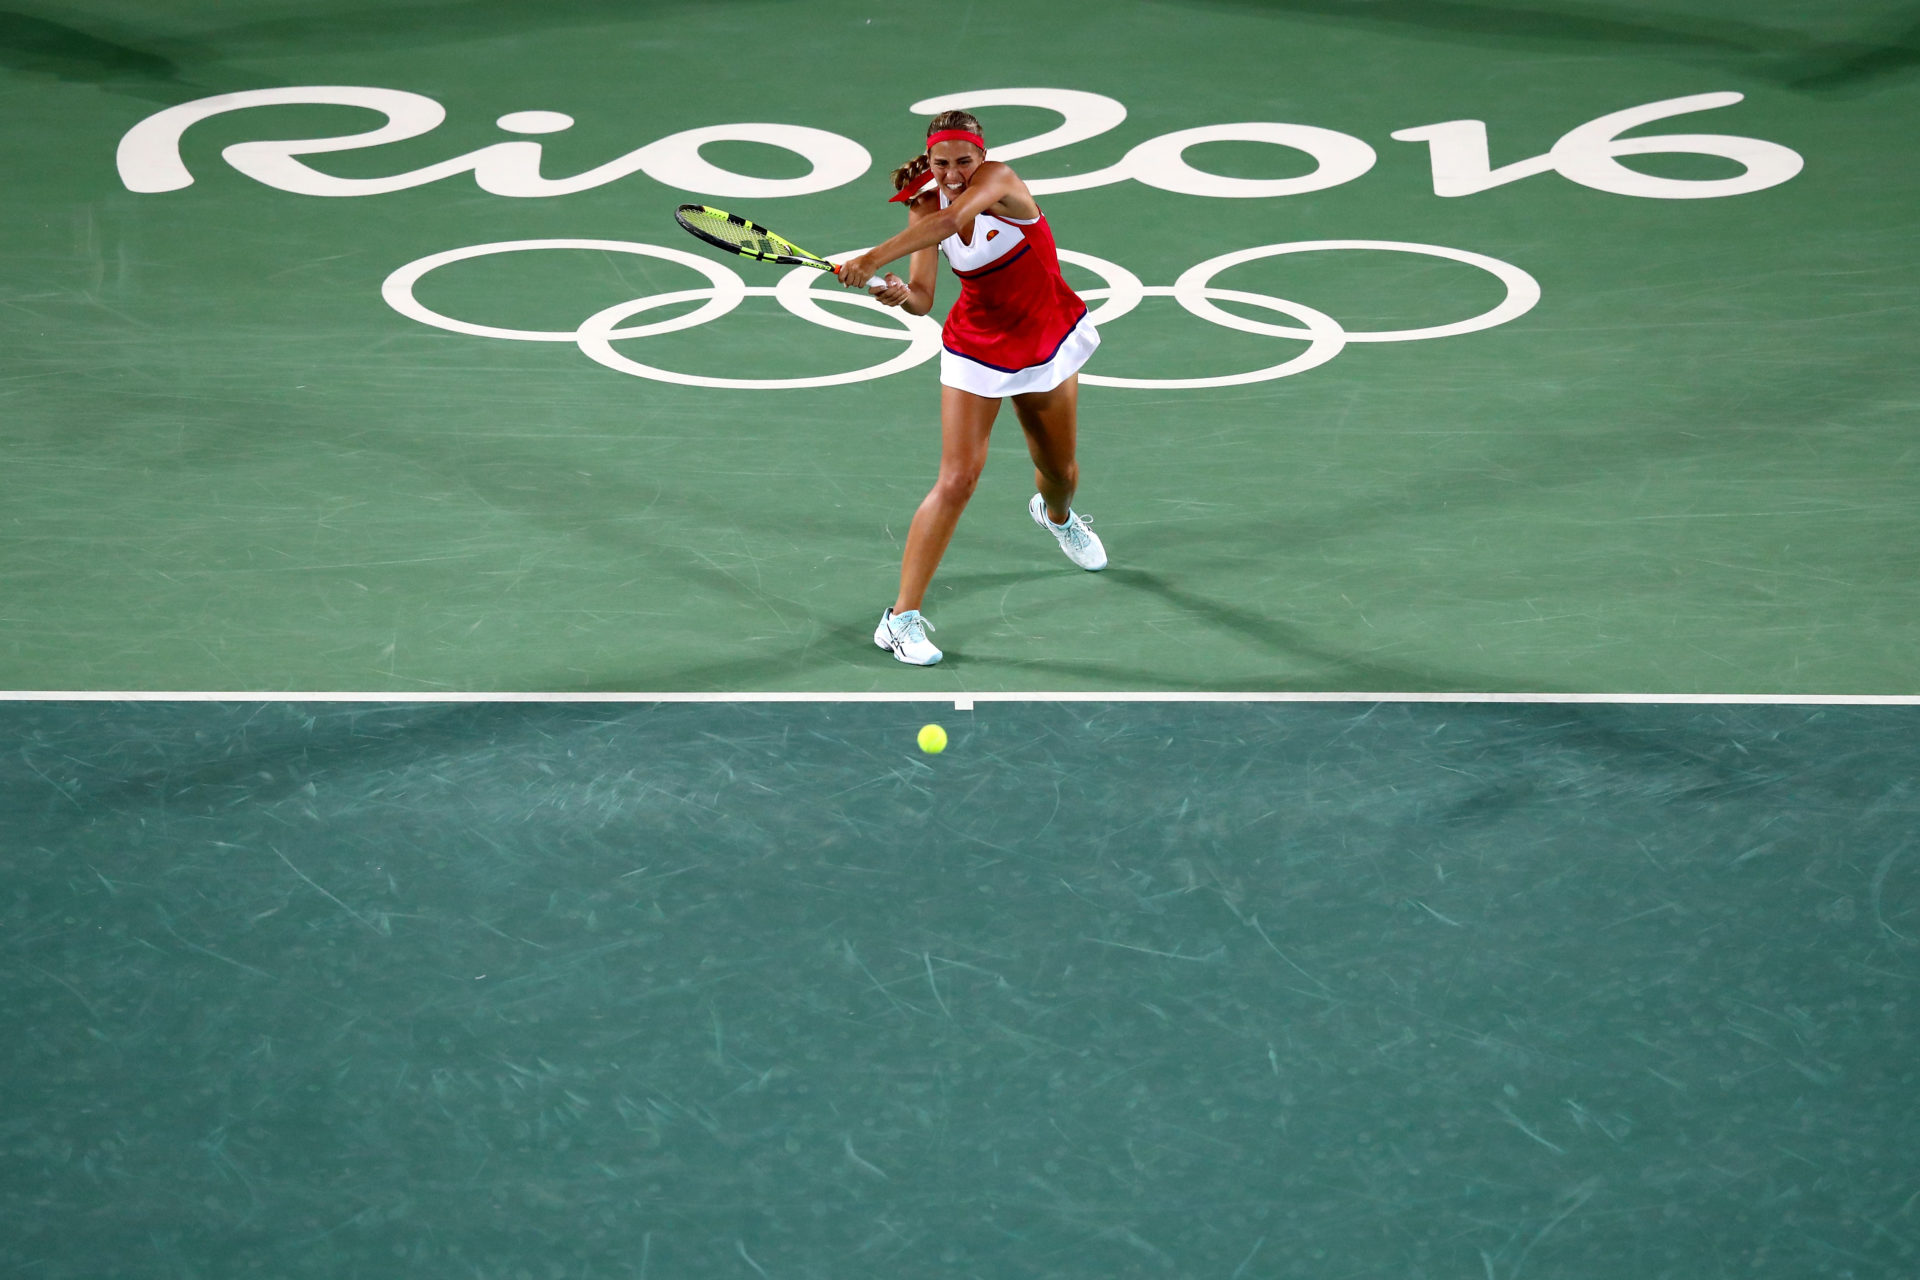 RIO DE JANEIRO, BRAZIL - AUGUST 13: Monica Puig of Puerto Rico returns a shot against Angelique Kerber of Germany during the Women's Singles Gold Medal Match on Day 8 of the Rio 2016 Olympic Games at the Olympic Tennis Centre on August 13, 2016 in Rio de Janeiro, Brazil. (Photo by Dean Mouhtaropoulos/Getty Images)